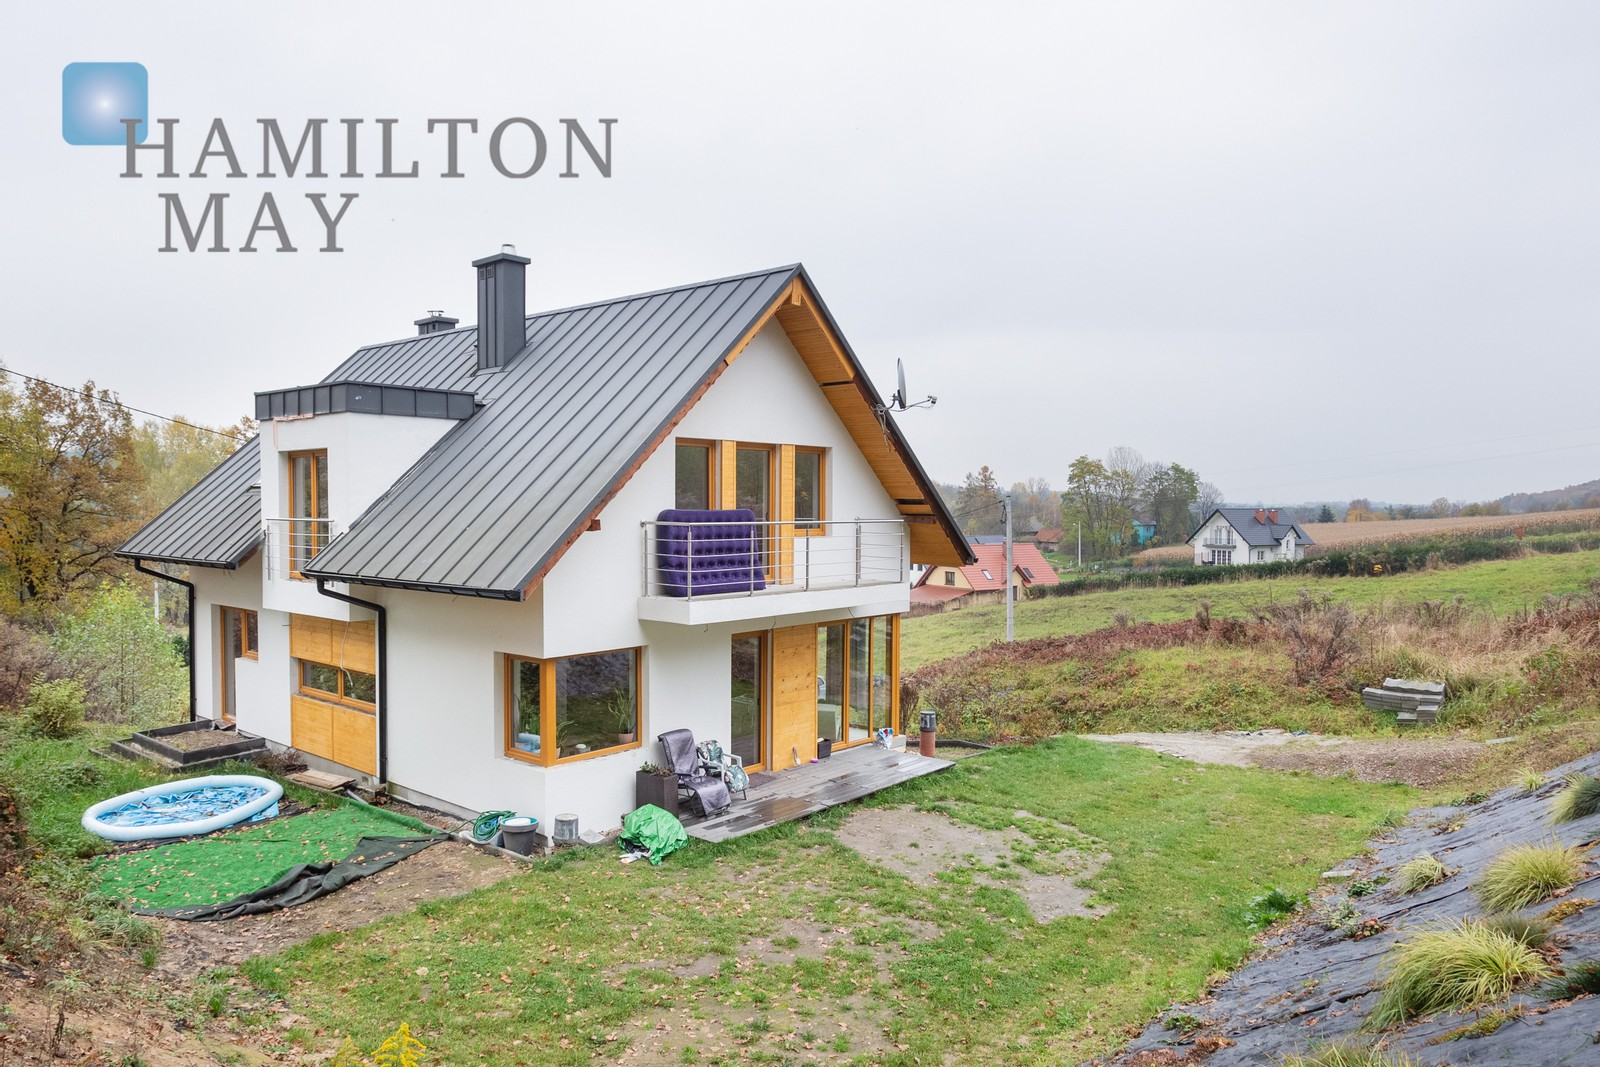 A beautiful, modern house located on a hill overlooking Michałowice Krakow for sale